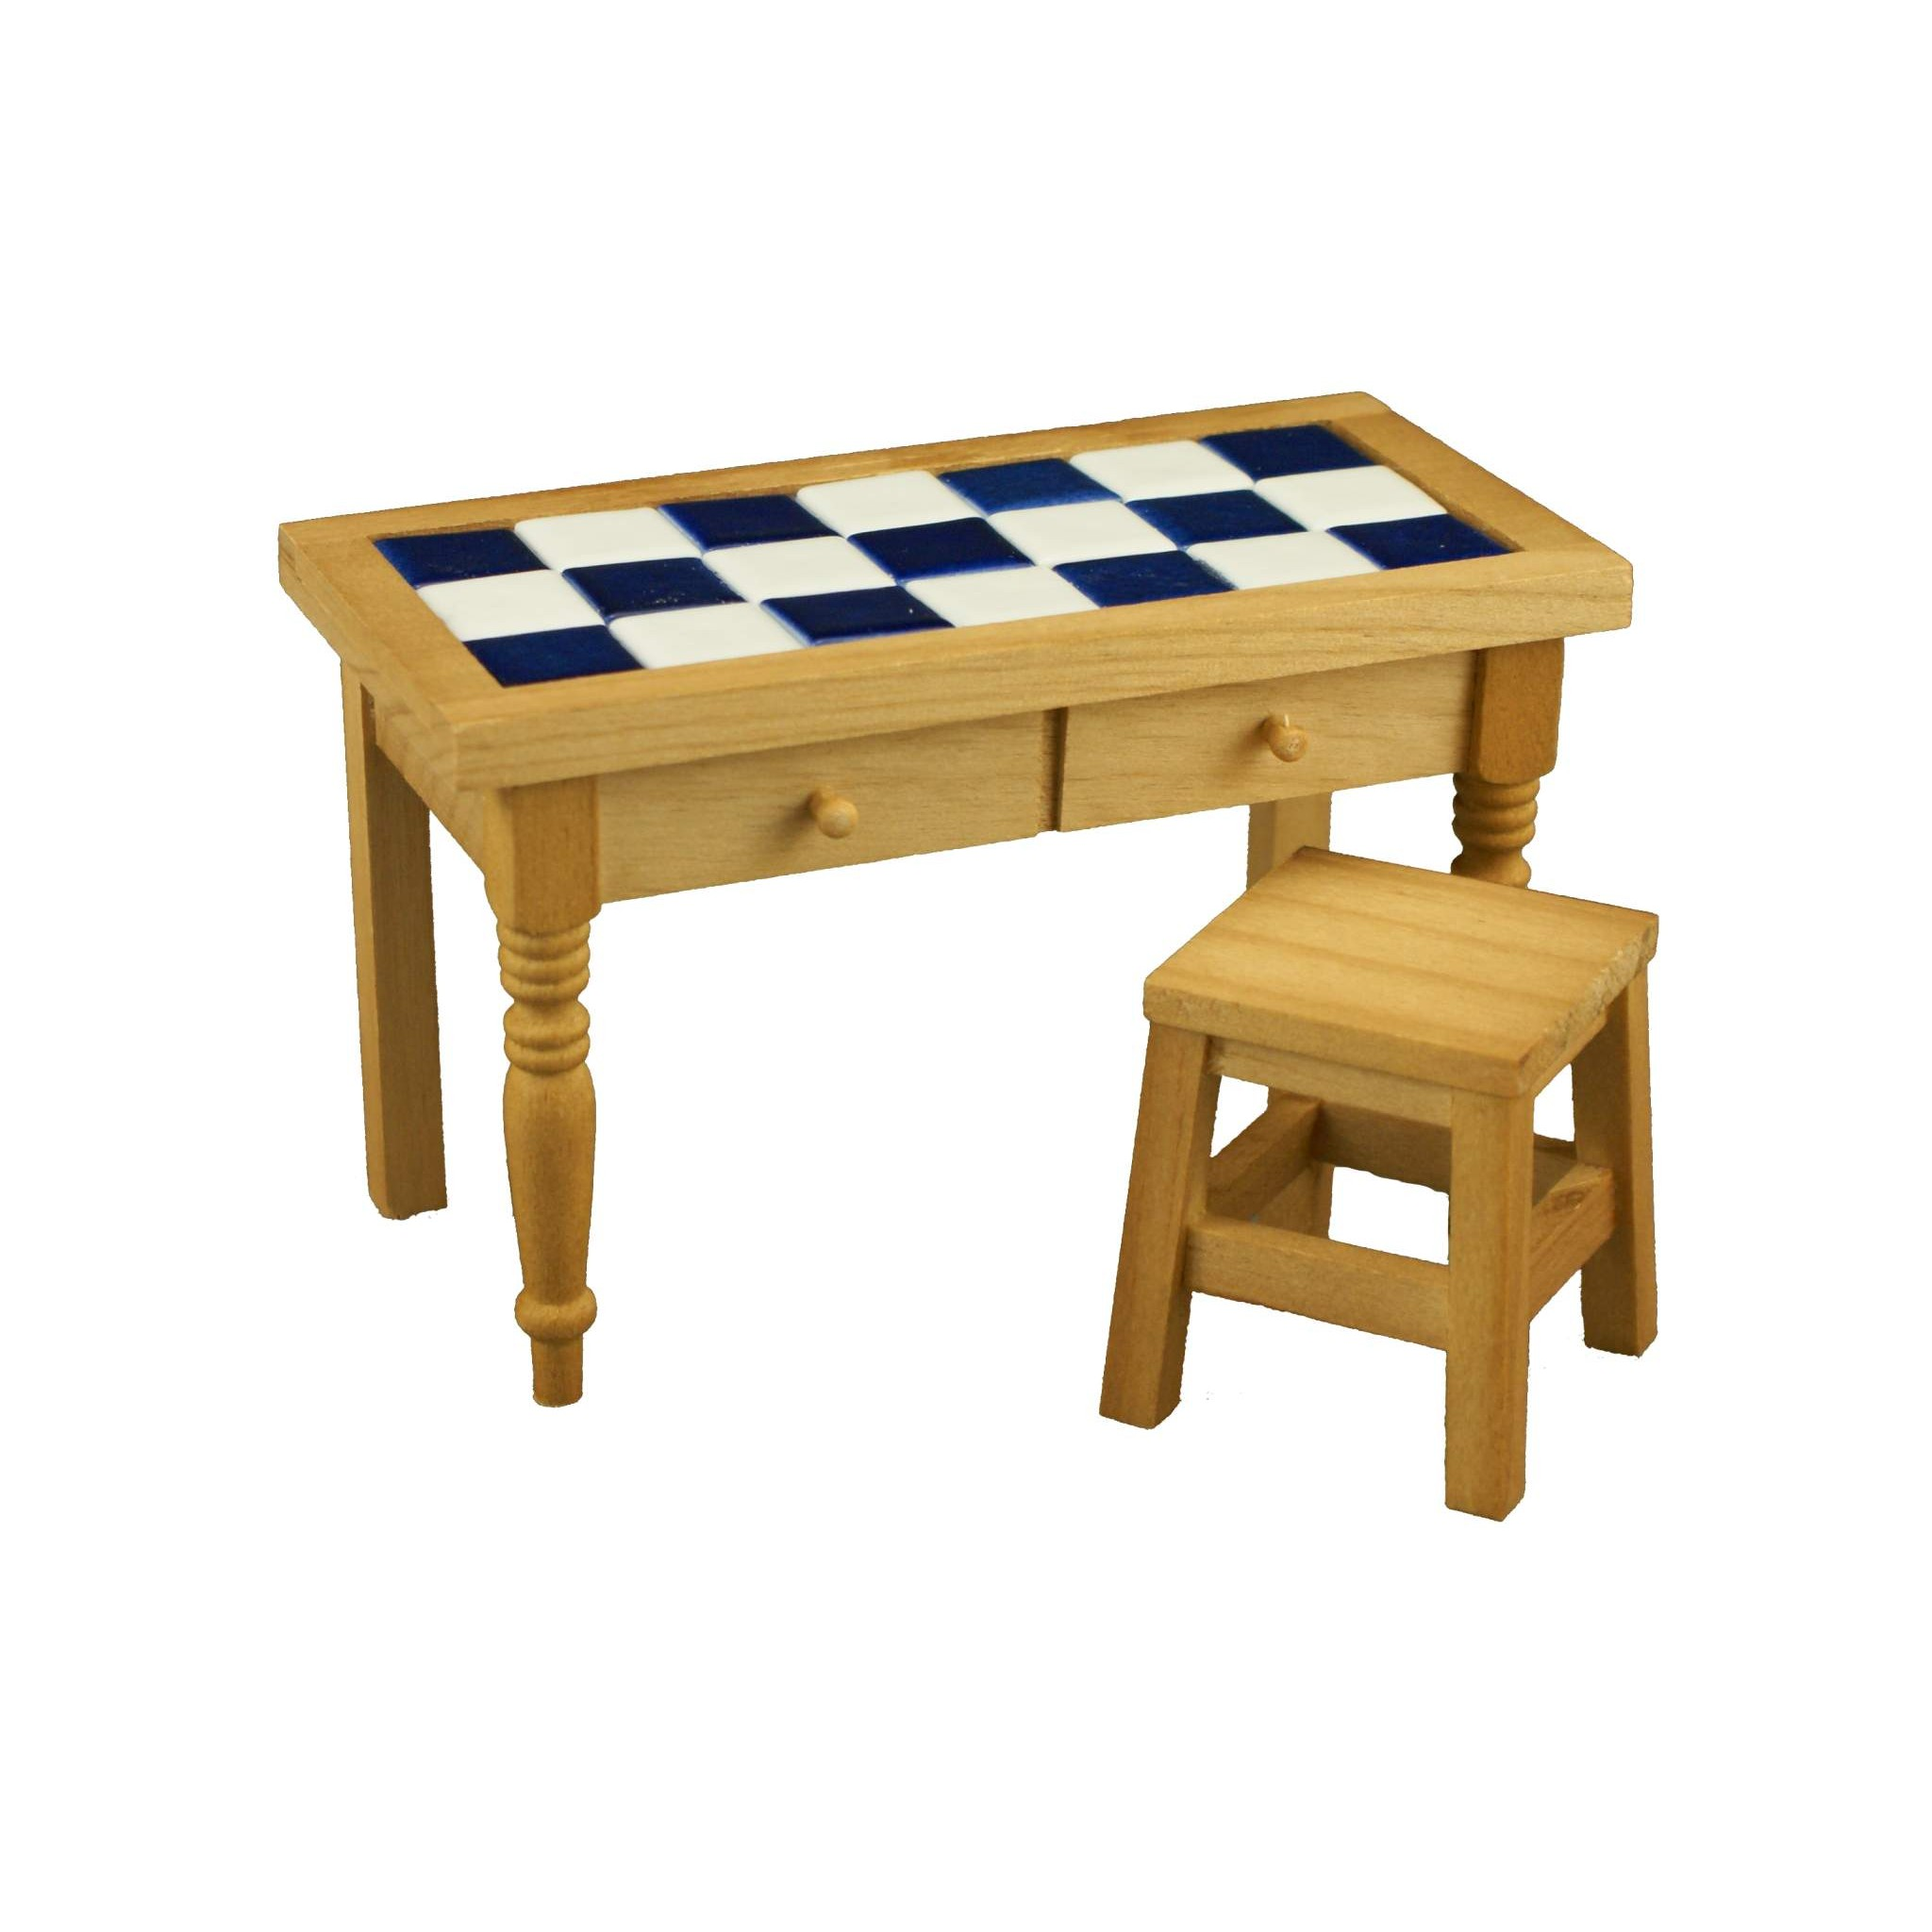 Reutters Kitchen Table With Tiles